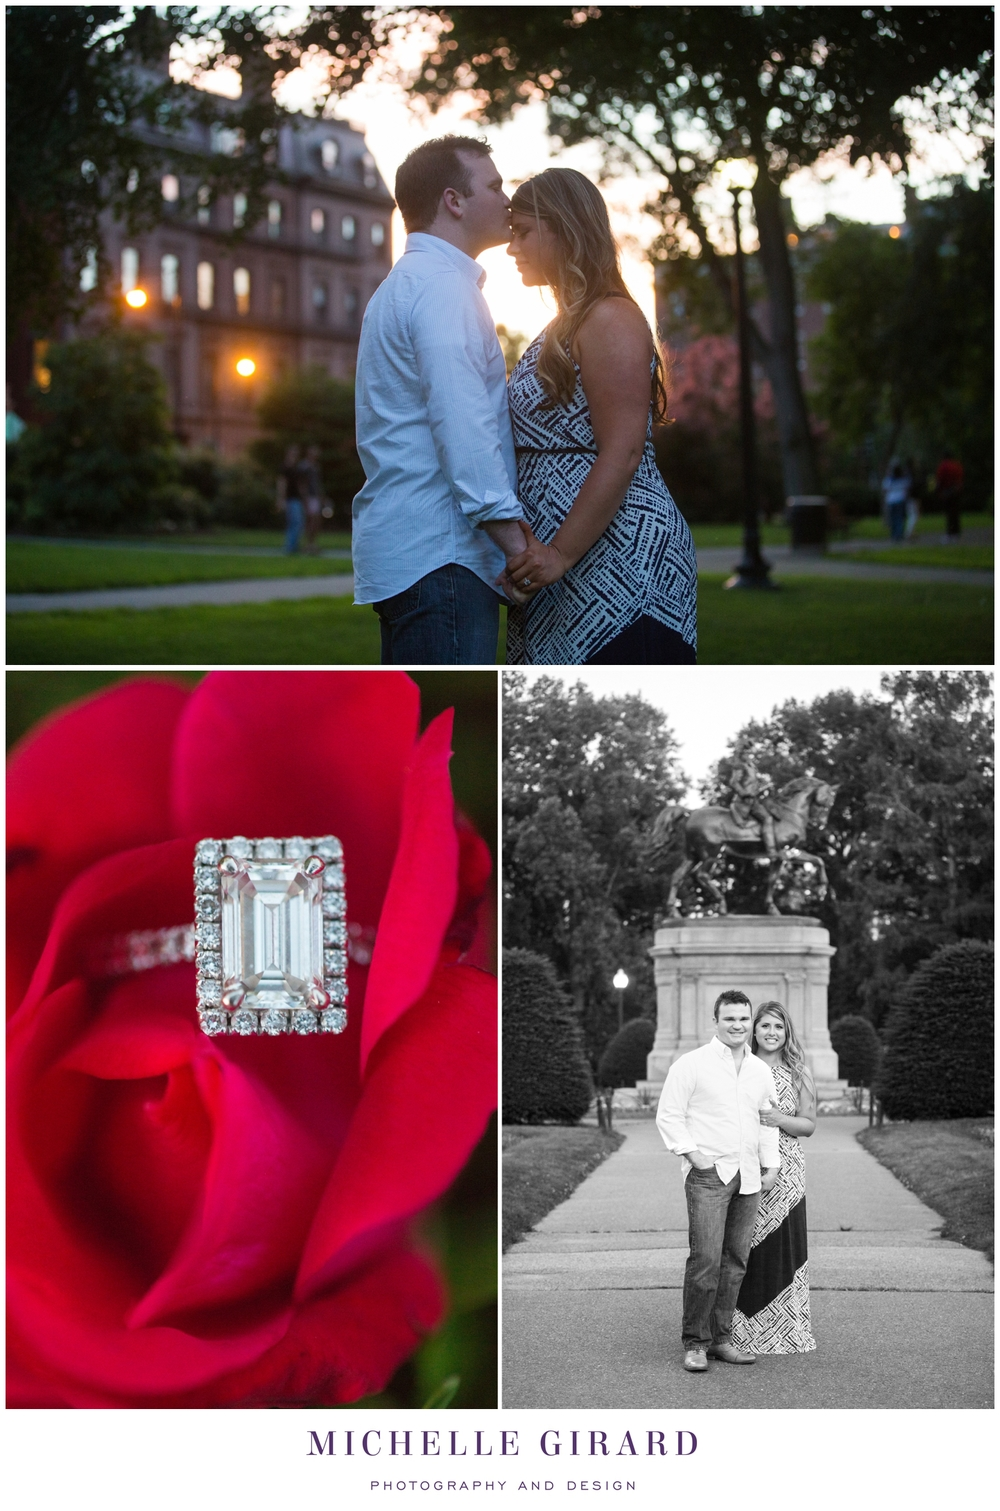 BostonCommonsGardens_BostonEngagementSession_MichelleGirardPhotography07.jpg